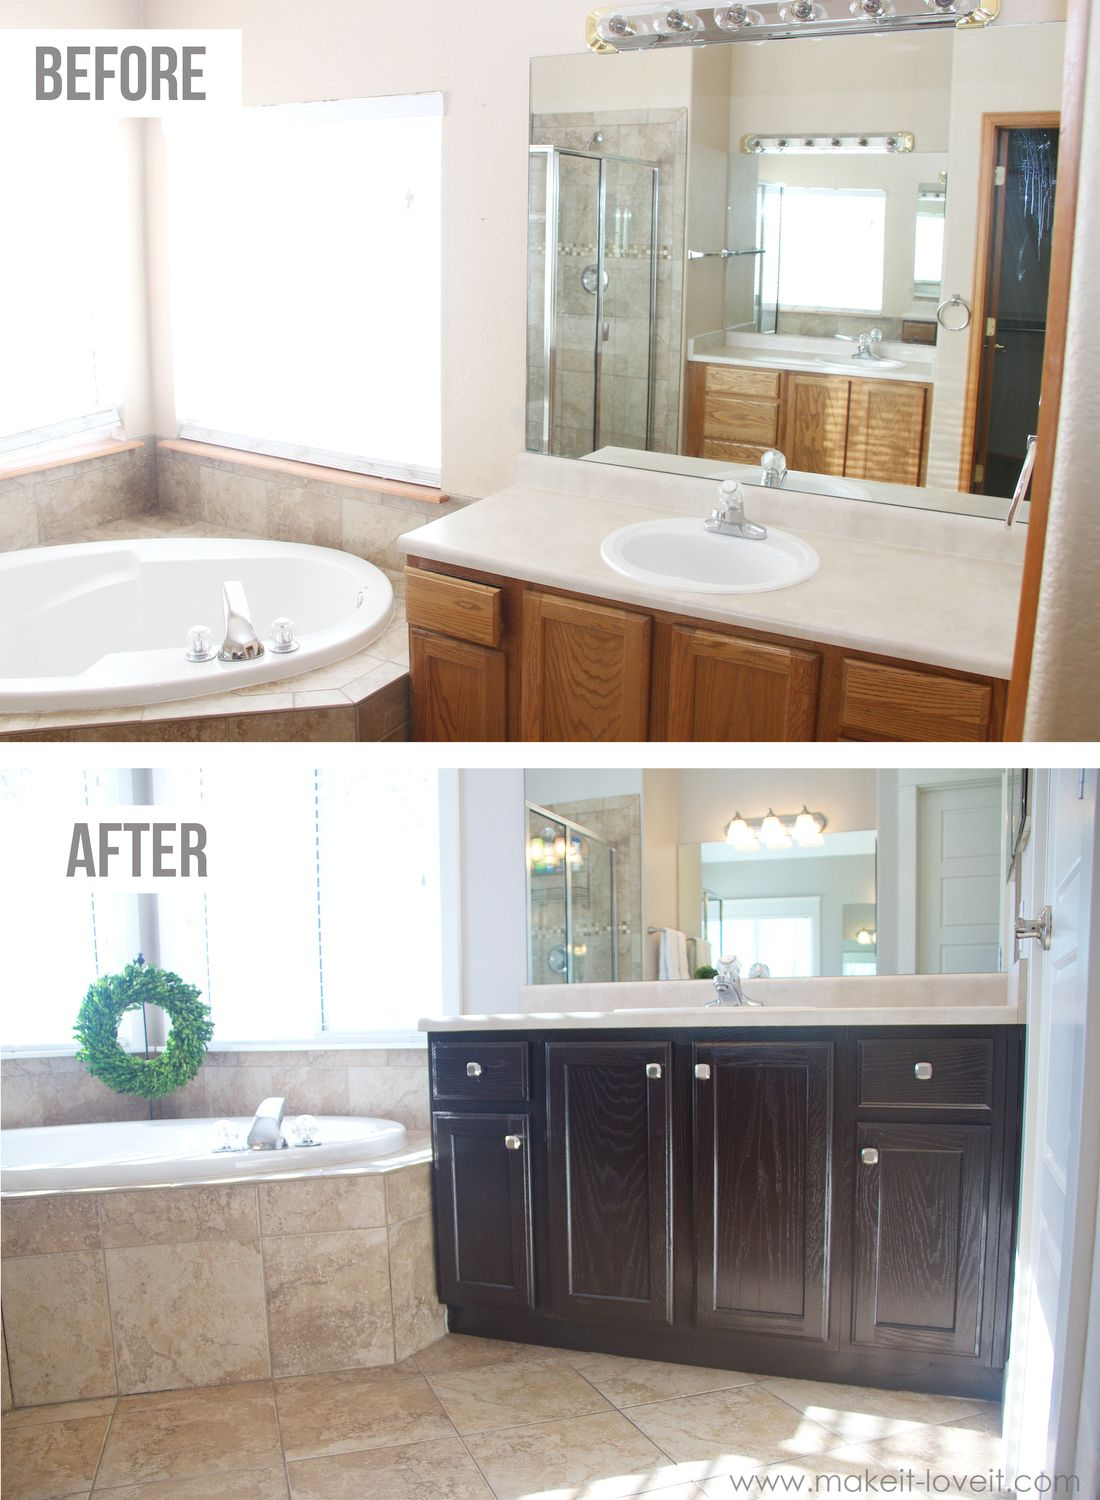 How You Can Stain Oak Kitchen Cabinets And Bathroom